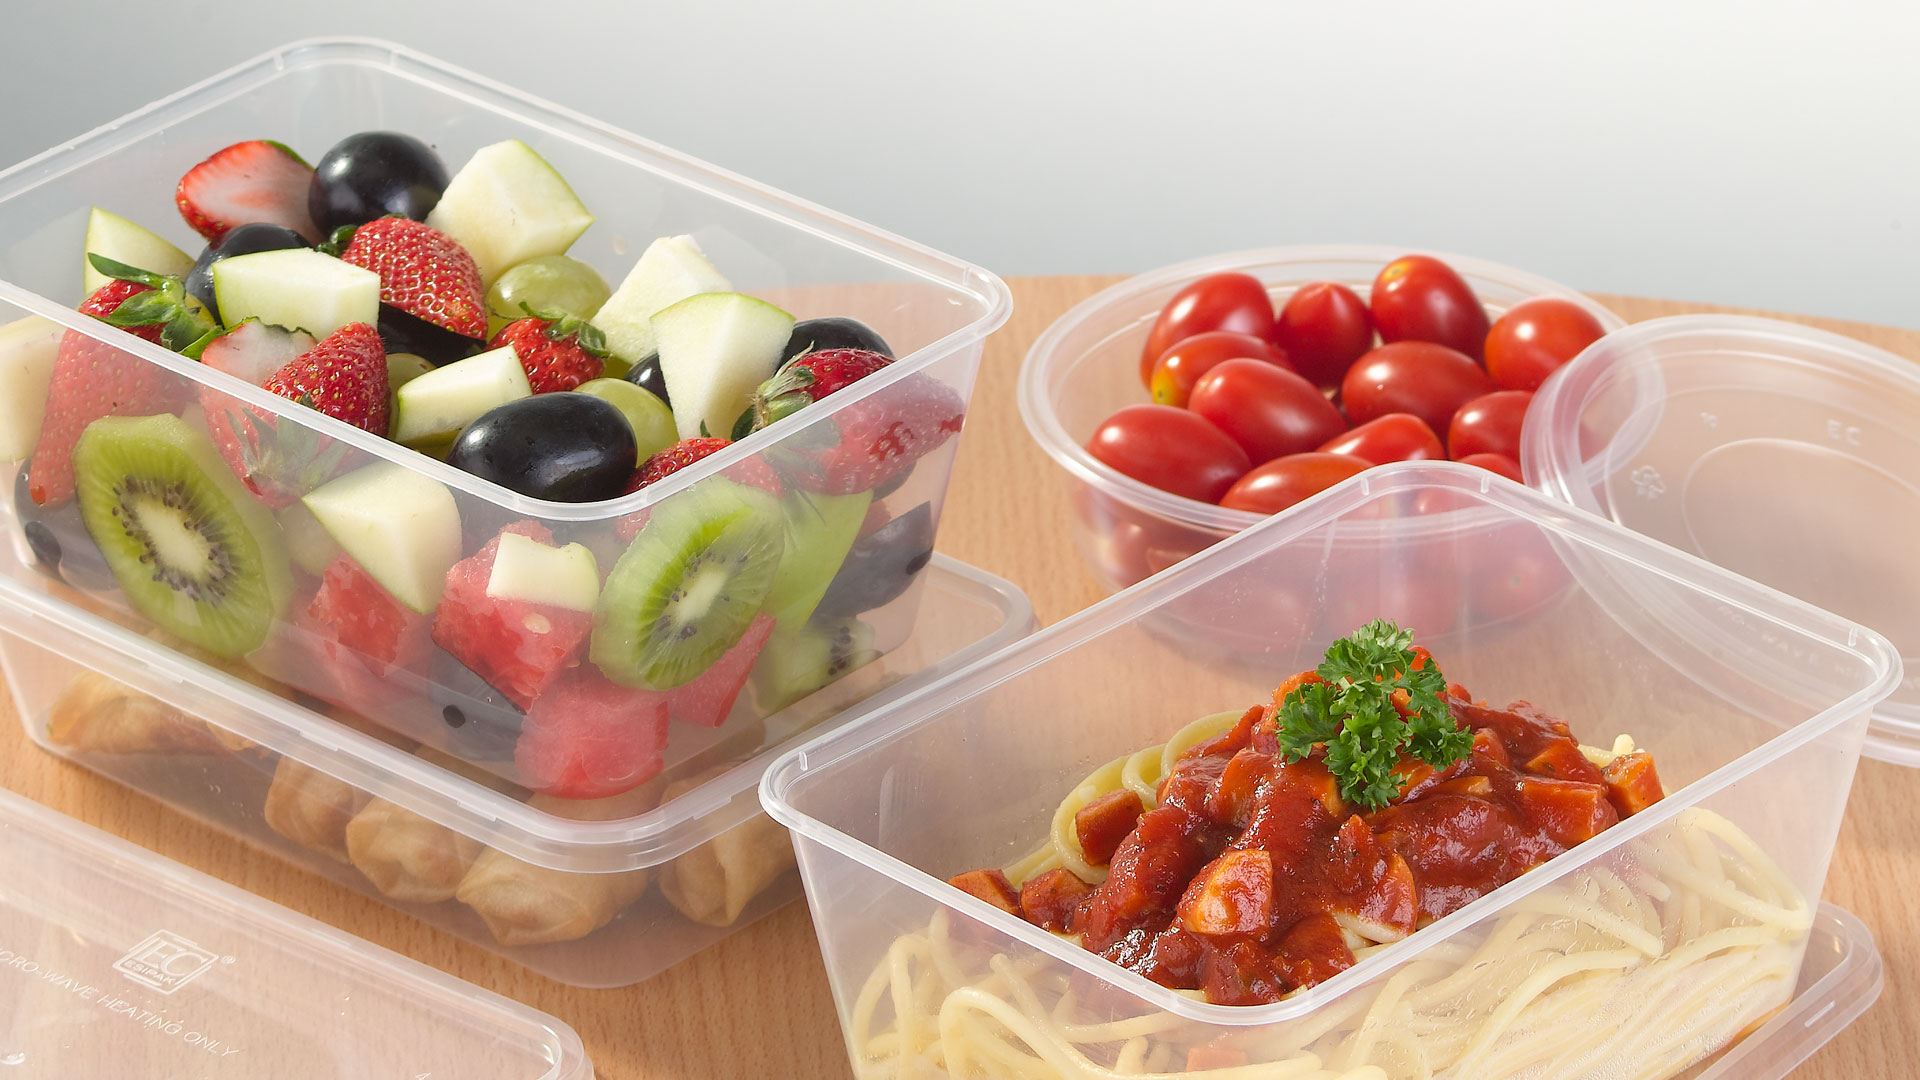 Plastic Food Container Market Share, Size, Growth, Trends | Industry Report